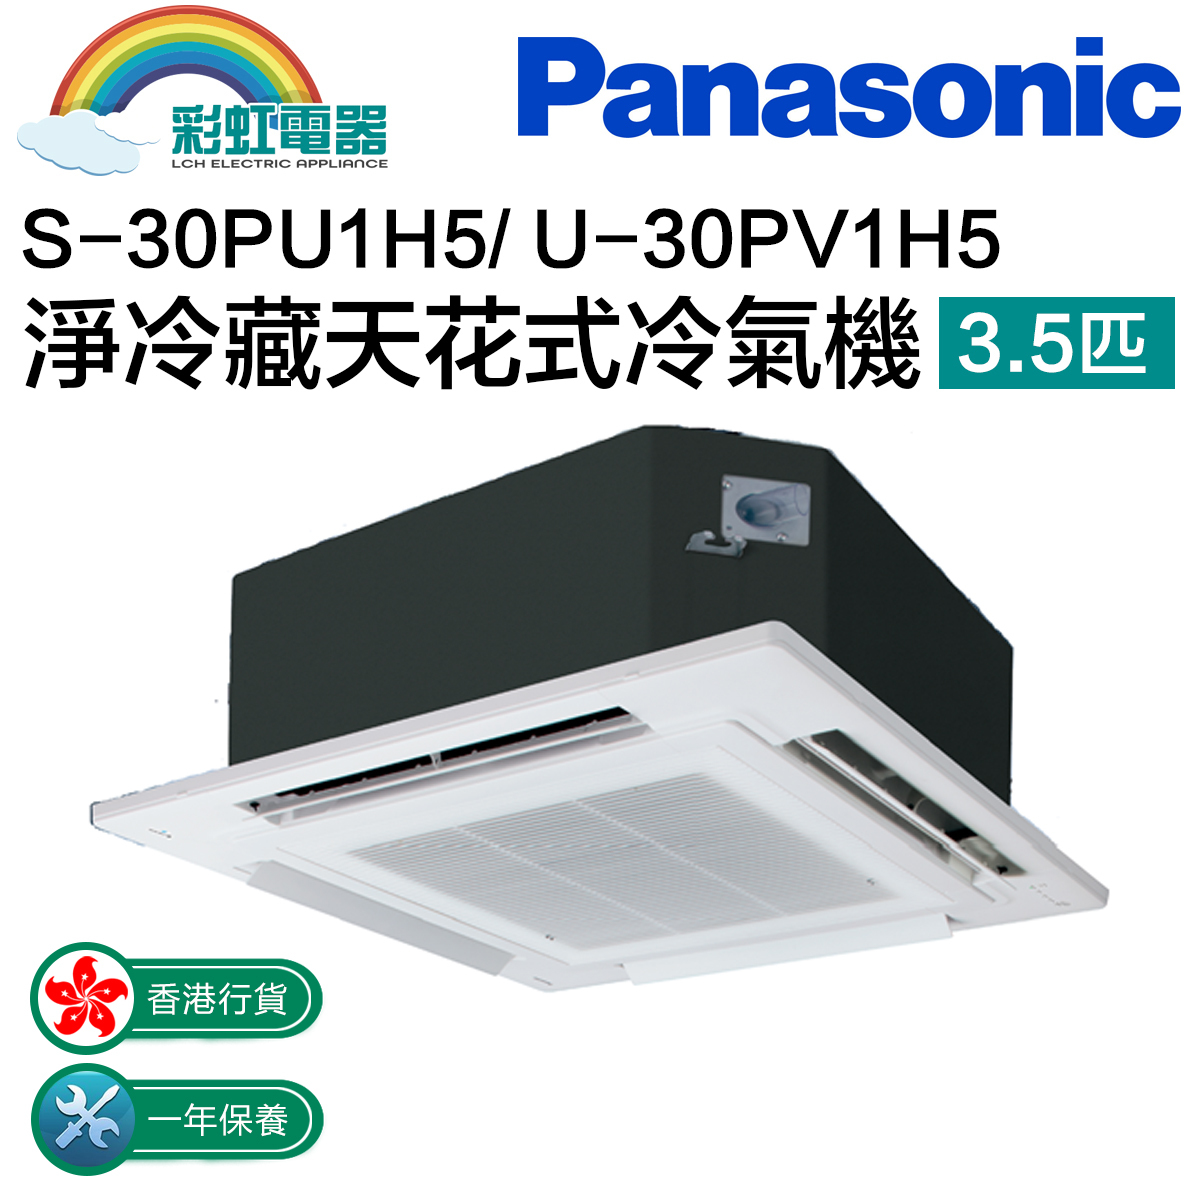 S-30PU1H5/ U-30PV1H5 net refrigerating day fancy air conditioner 3.5 pieces